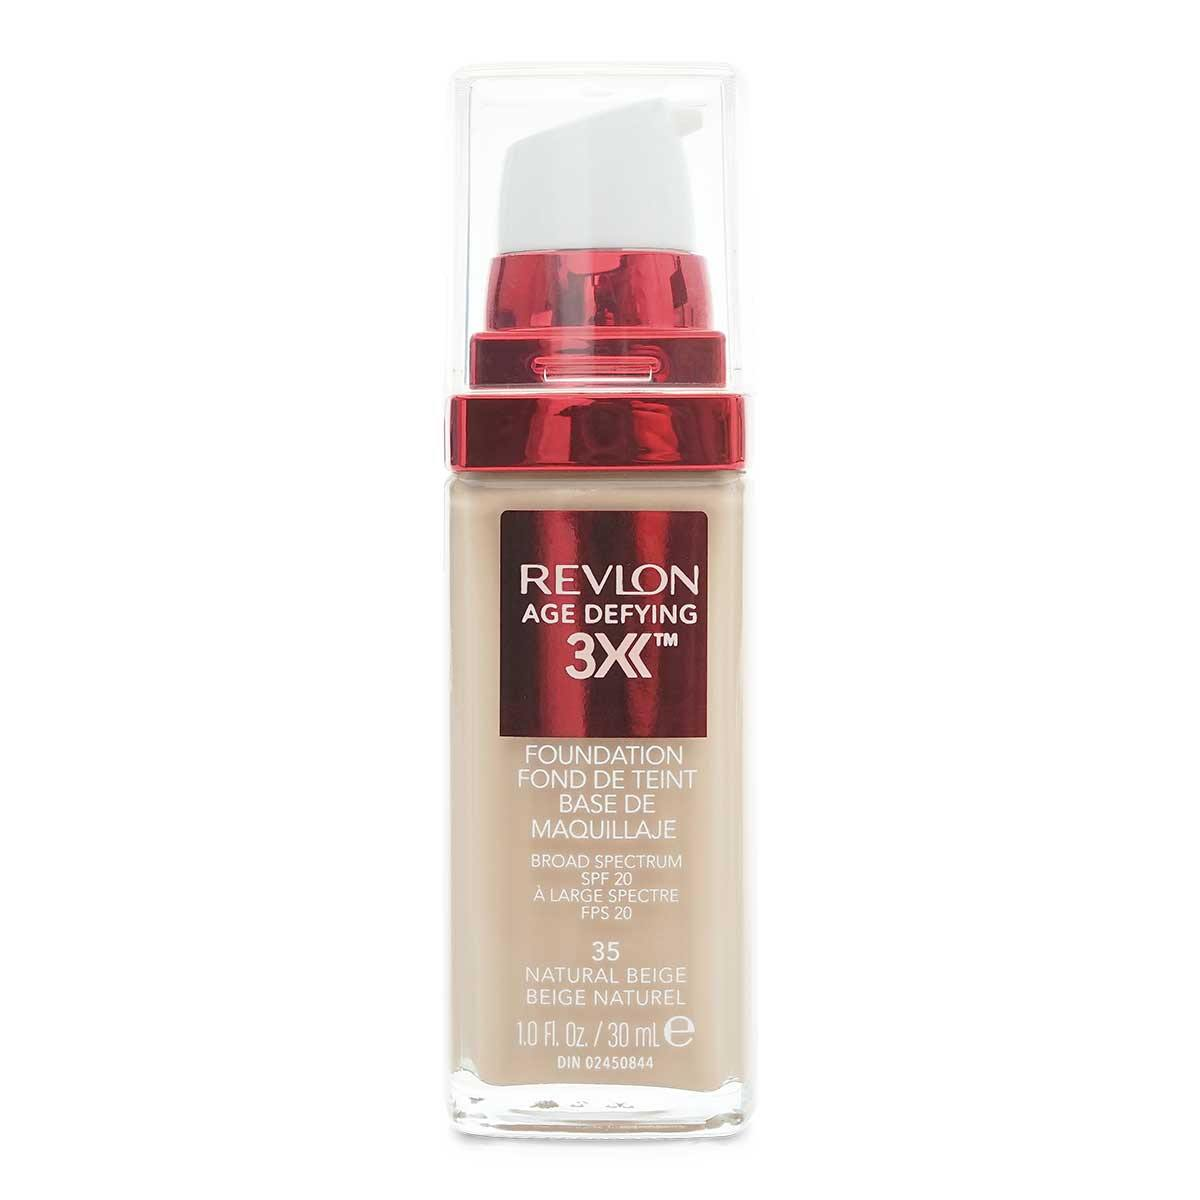 Revlon AGE DEFYING ALL IN ONE FOUNDATION (12/cs)